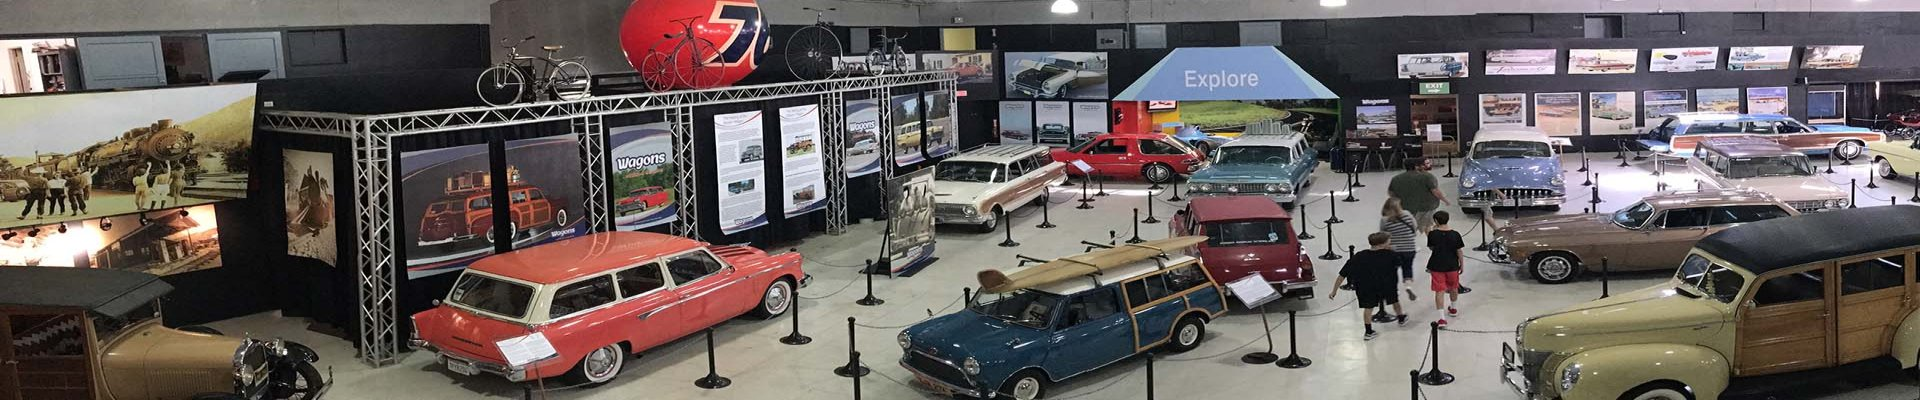 wagons exhibit2016